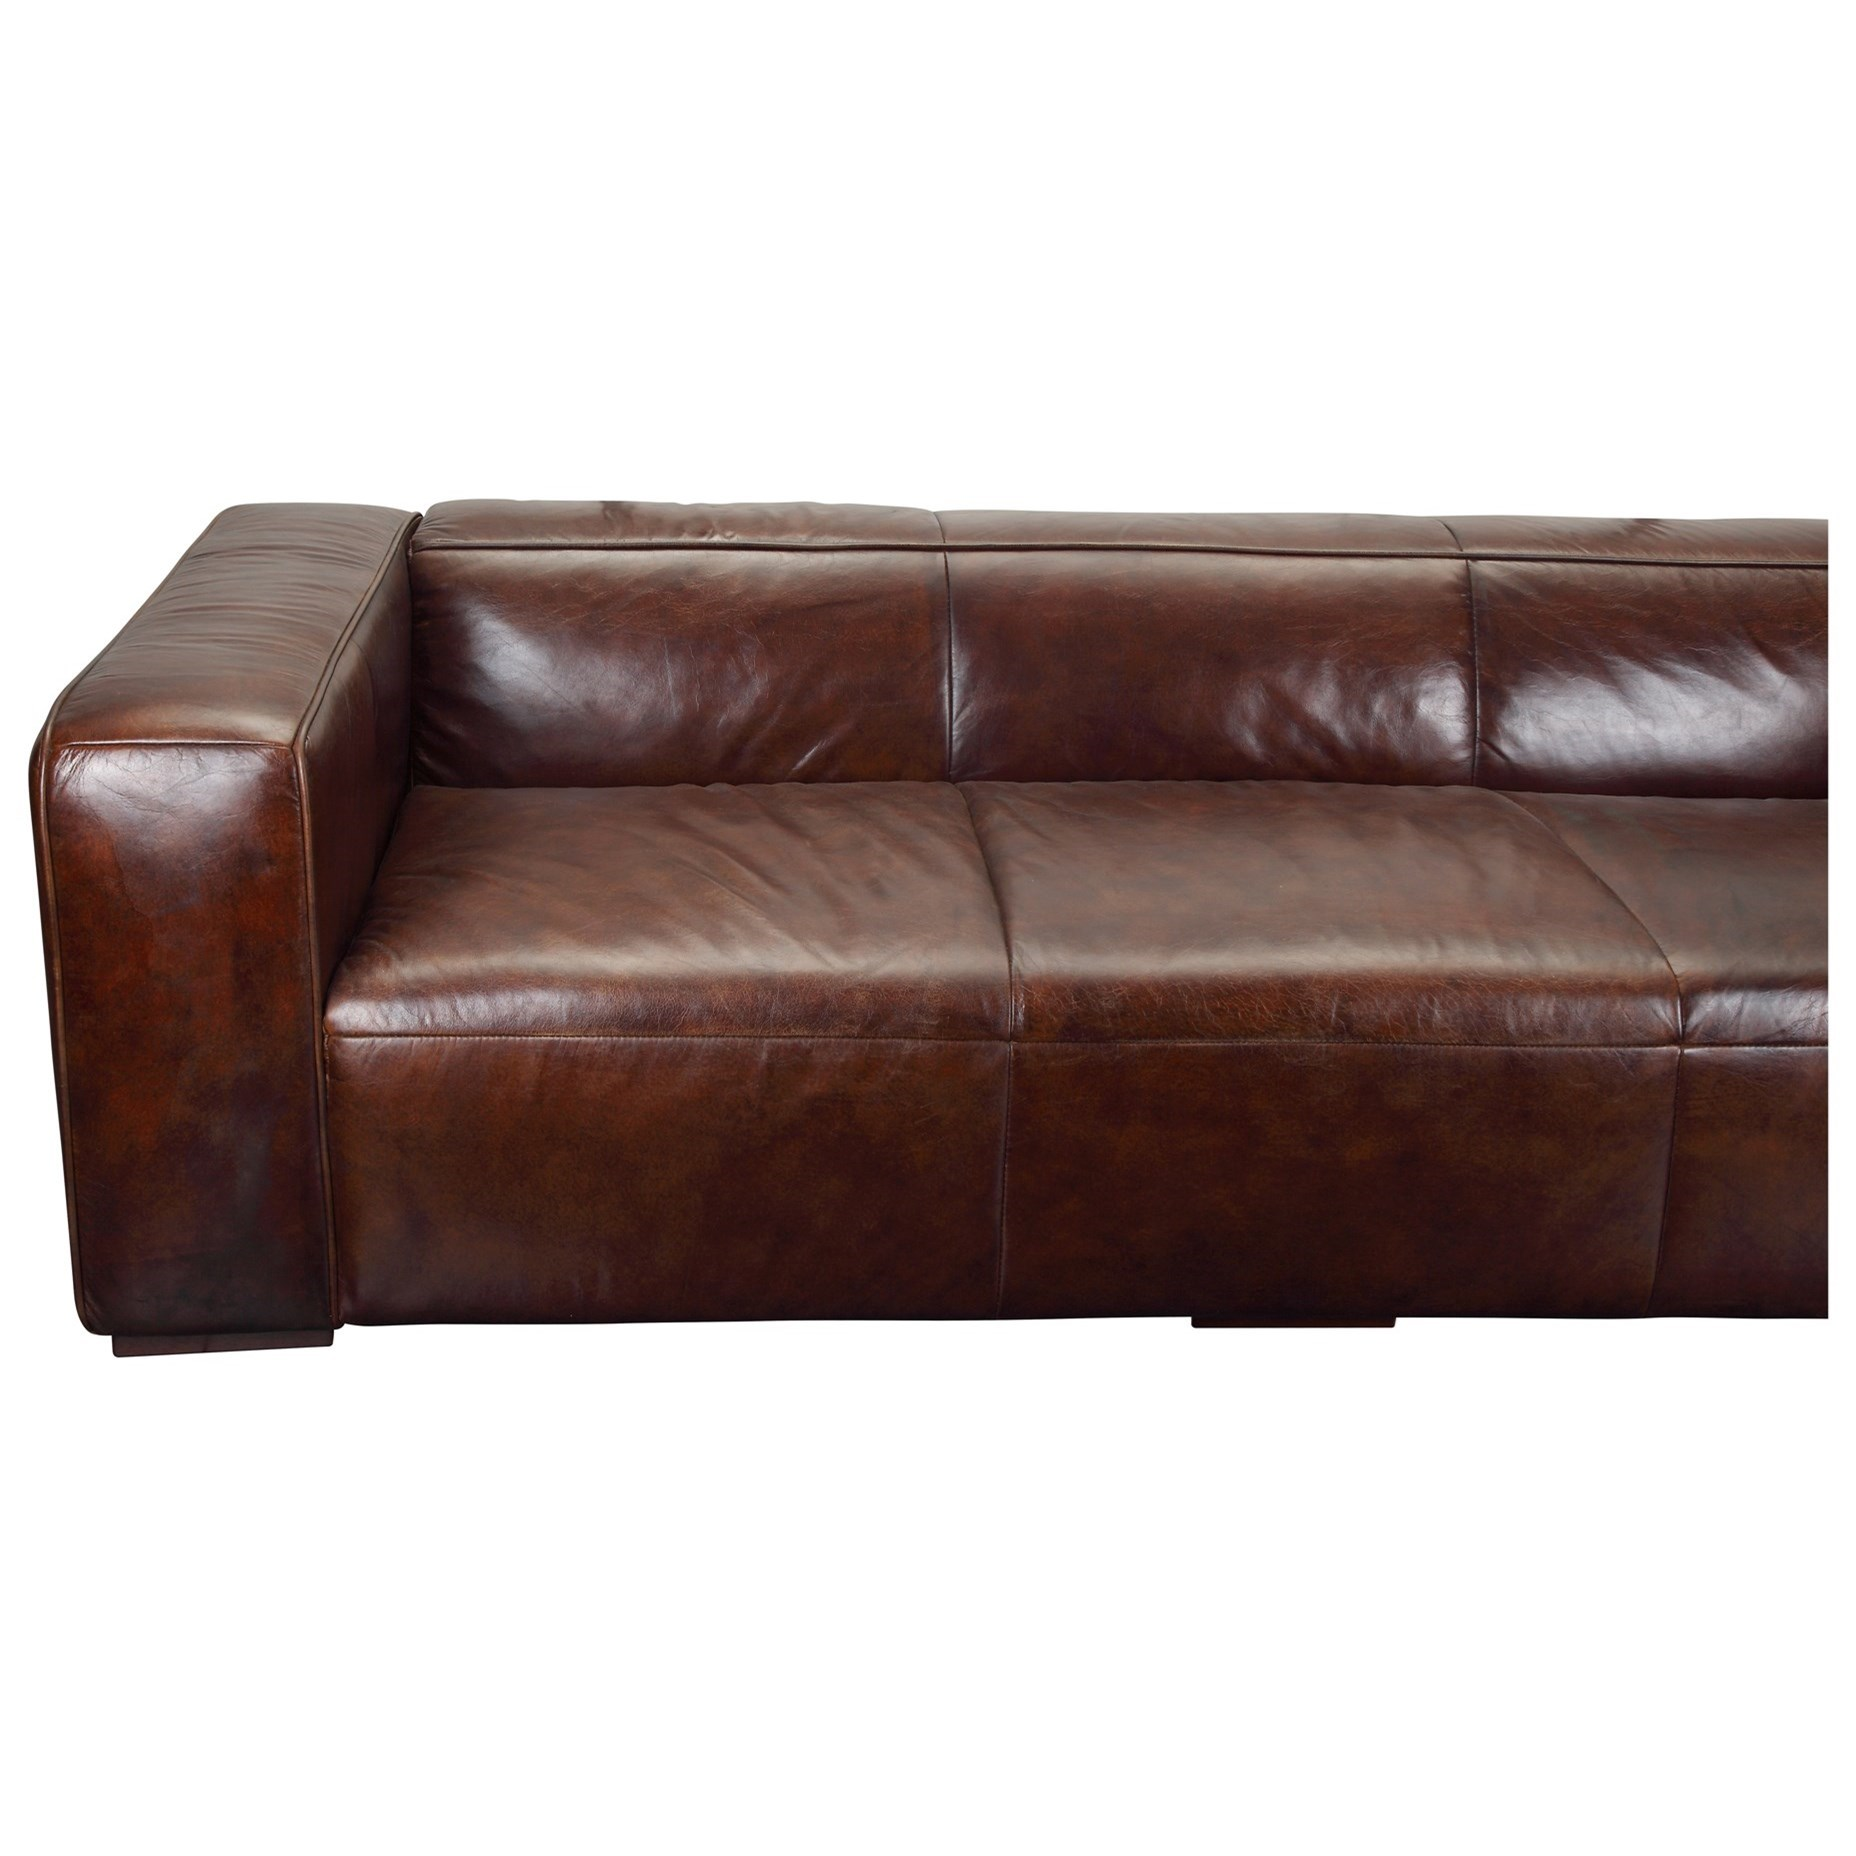 Leather Furniture Traveler Collection: Moe's Home Collection Bolton Top Grain Leather Sofa